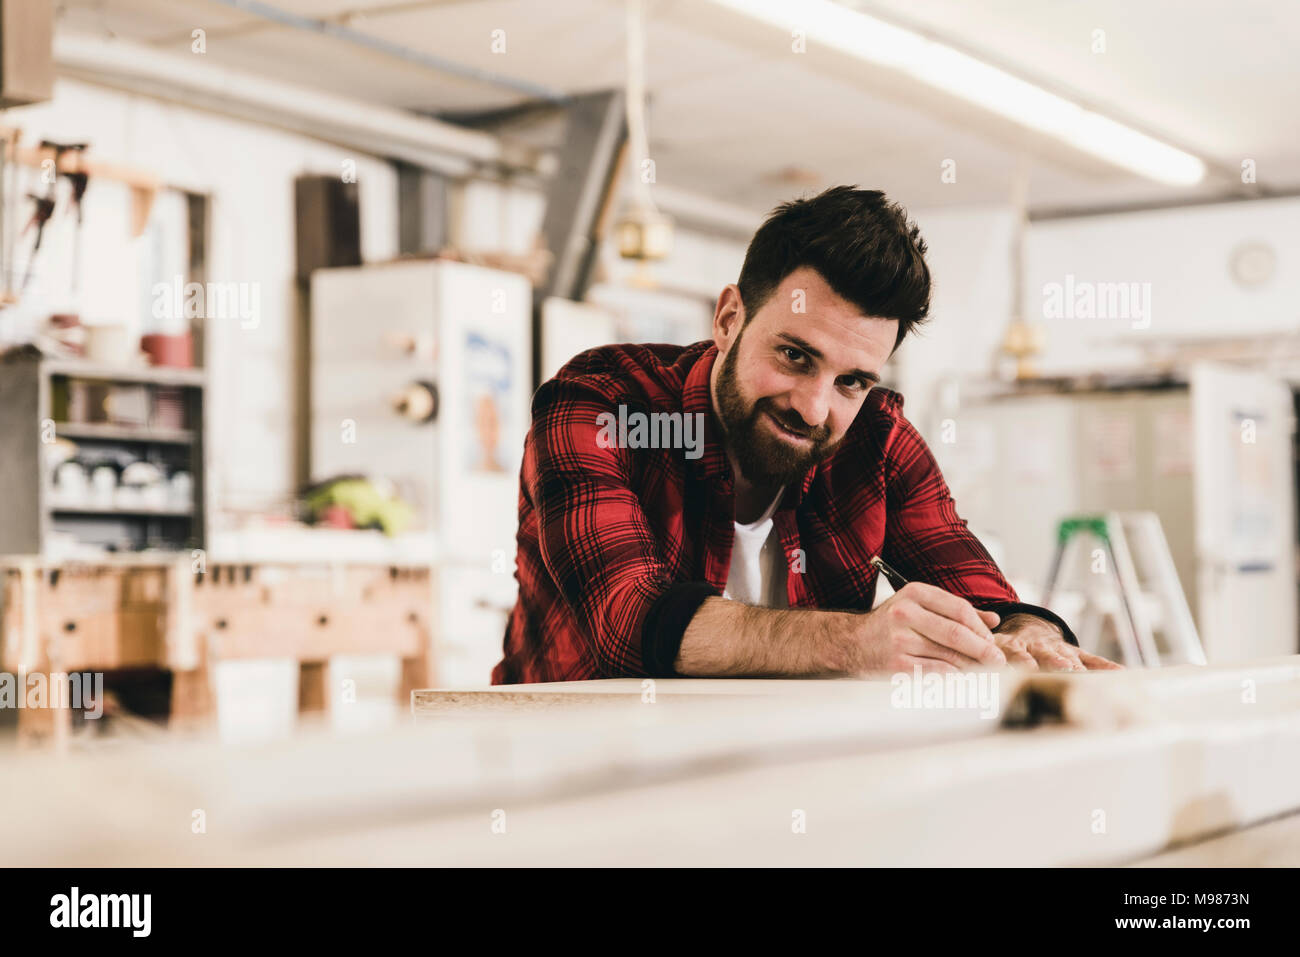 Portrait of smiling man in workshop Photo Stock